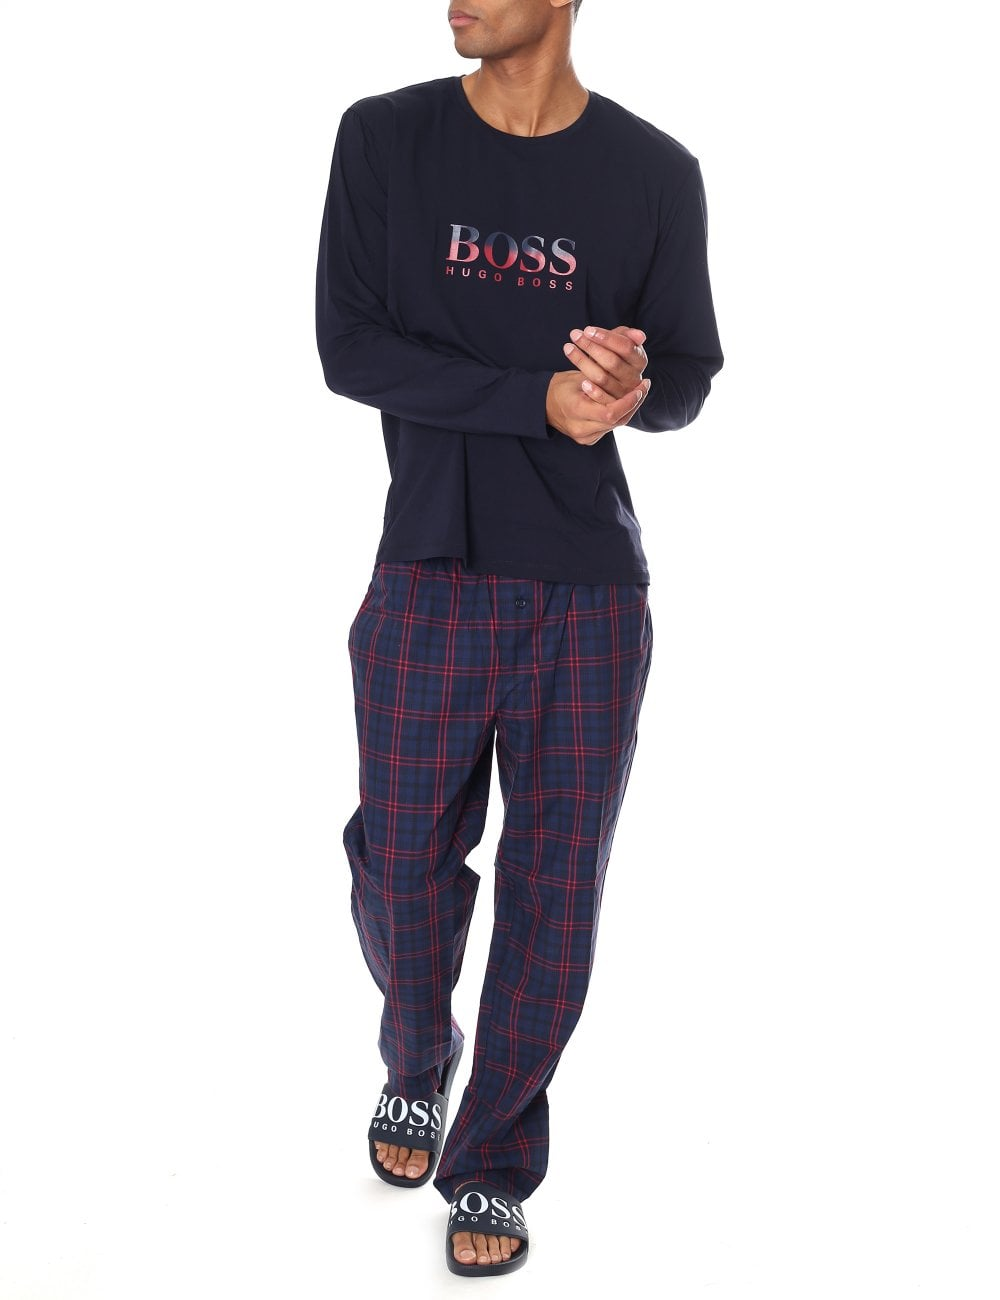 Boss Bodywear Men s Pyjama Set deece1a7a